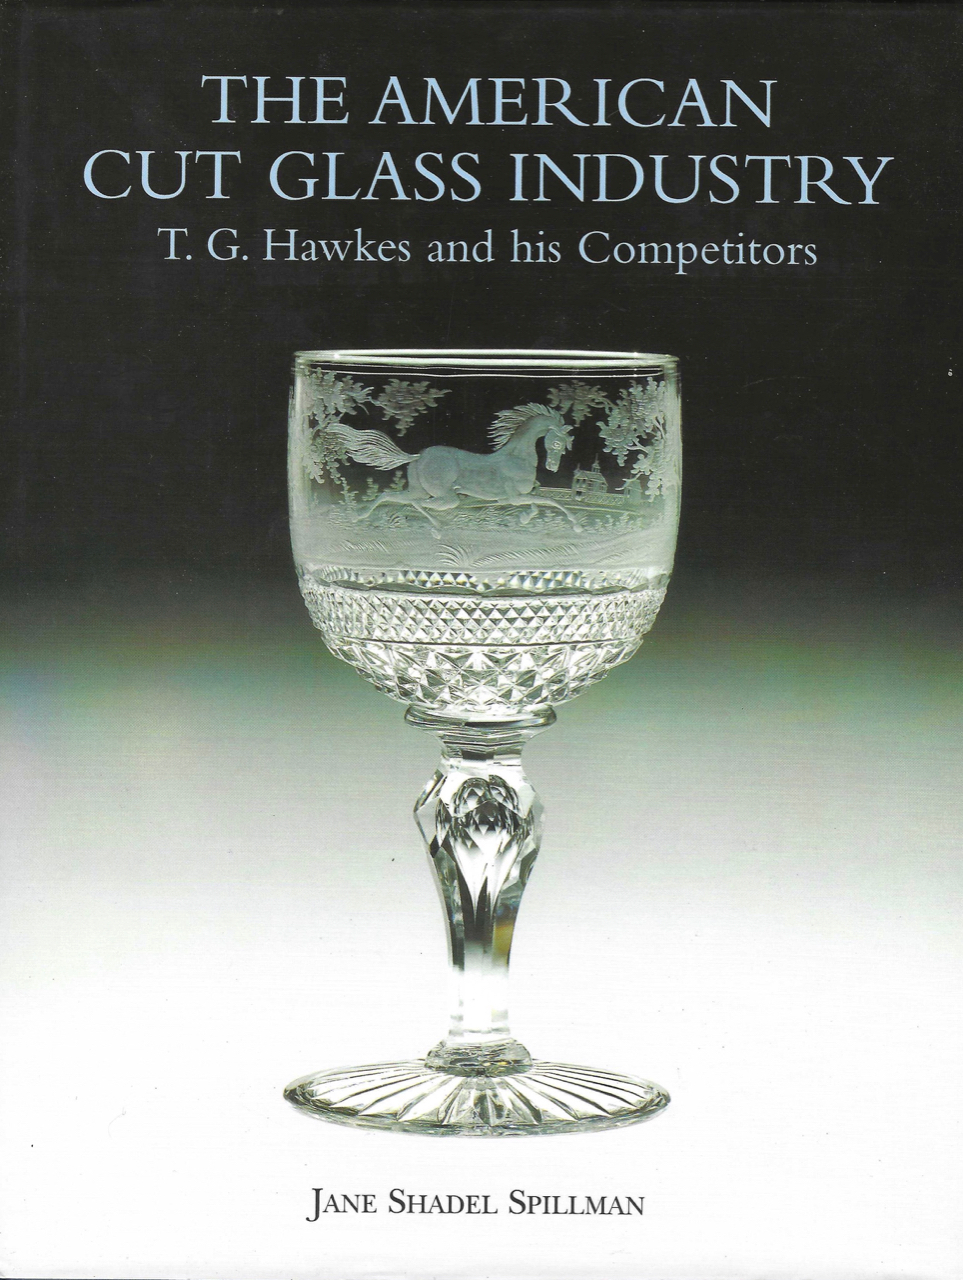 The American Cut Glass Industry T.G. Hawkes and his Competitors. Jane Shadel Spillman.